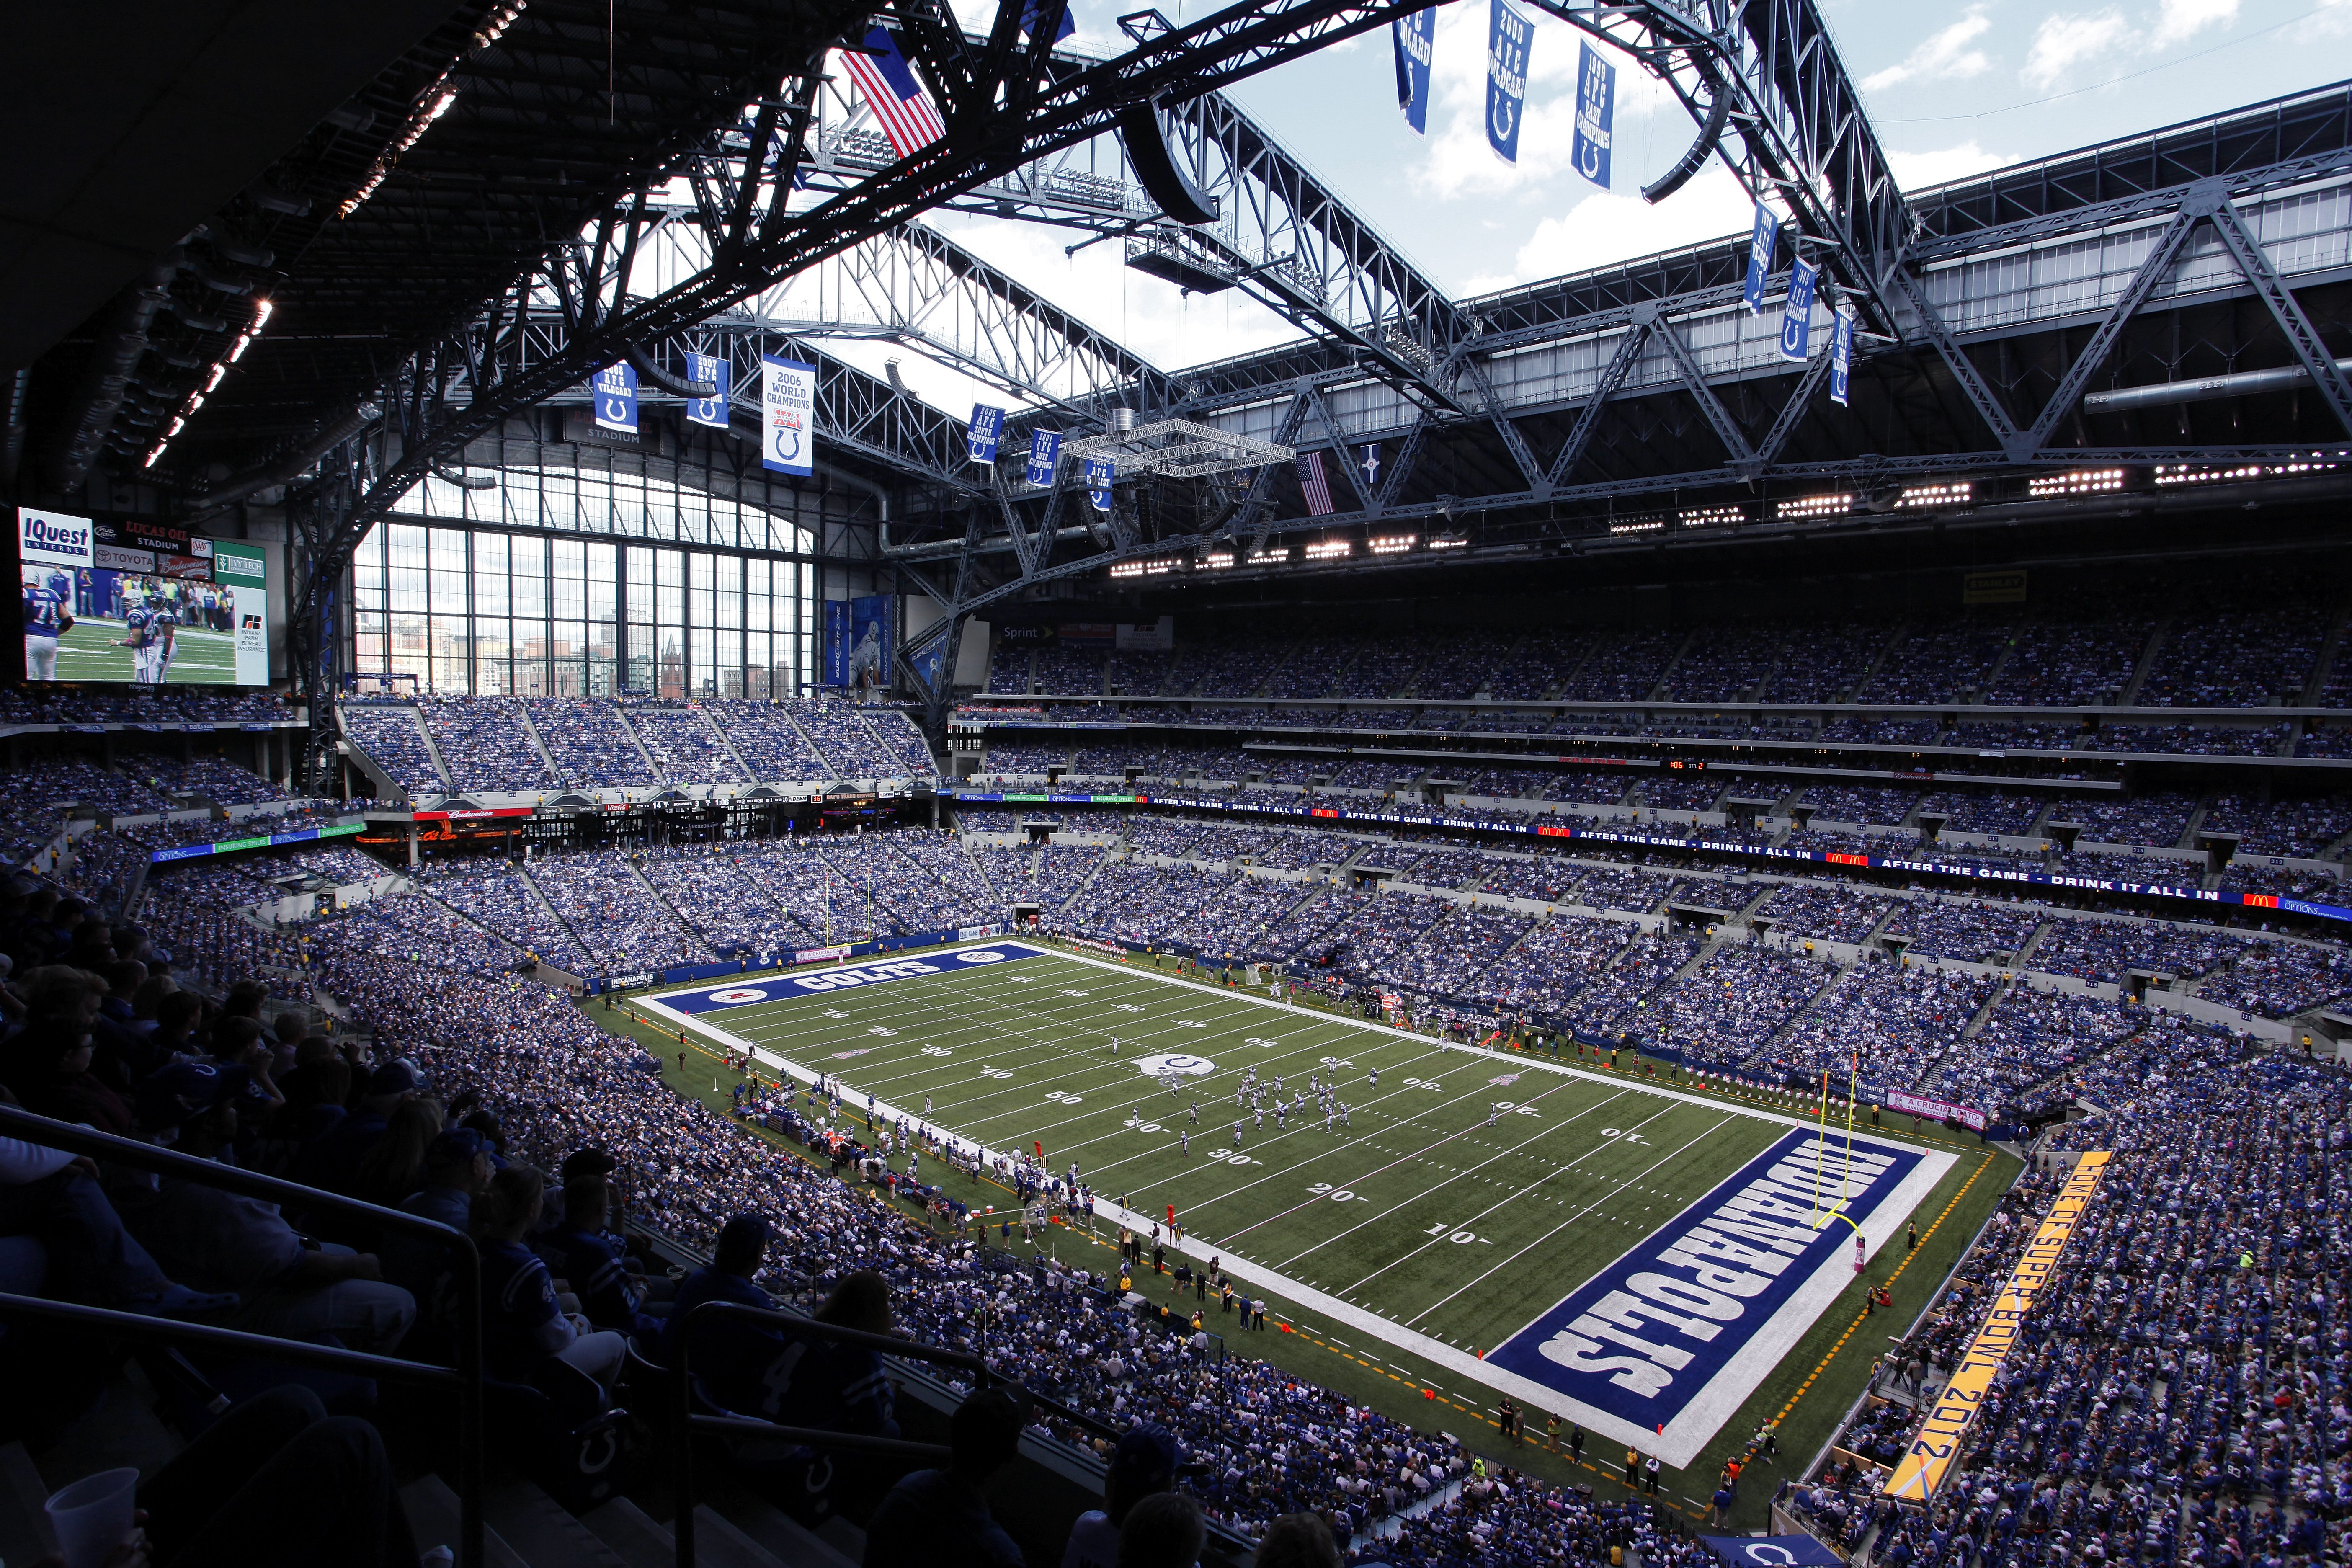 Lucas Oil Stadium, located in Indianapolis, is home to the Indianapolis Colts. The stadium, which seats 67,000 people, opened in 2008 and is also used by the NCAA for men's and women's football and basketball tournaments.